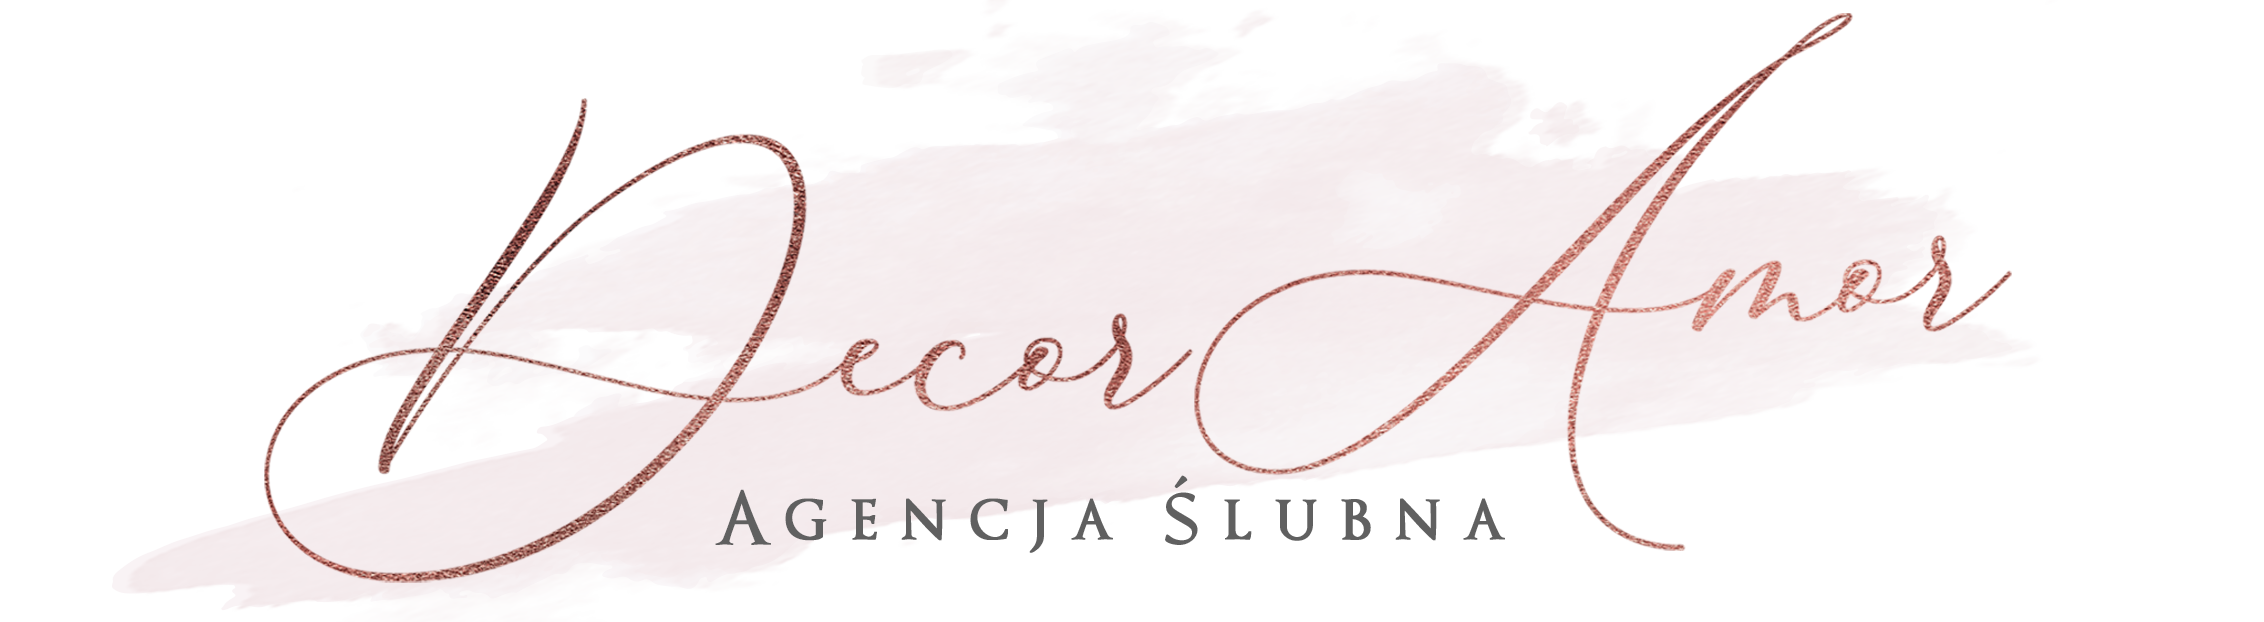 Agencja Ślubna DecorAmor – Wedding Planner